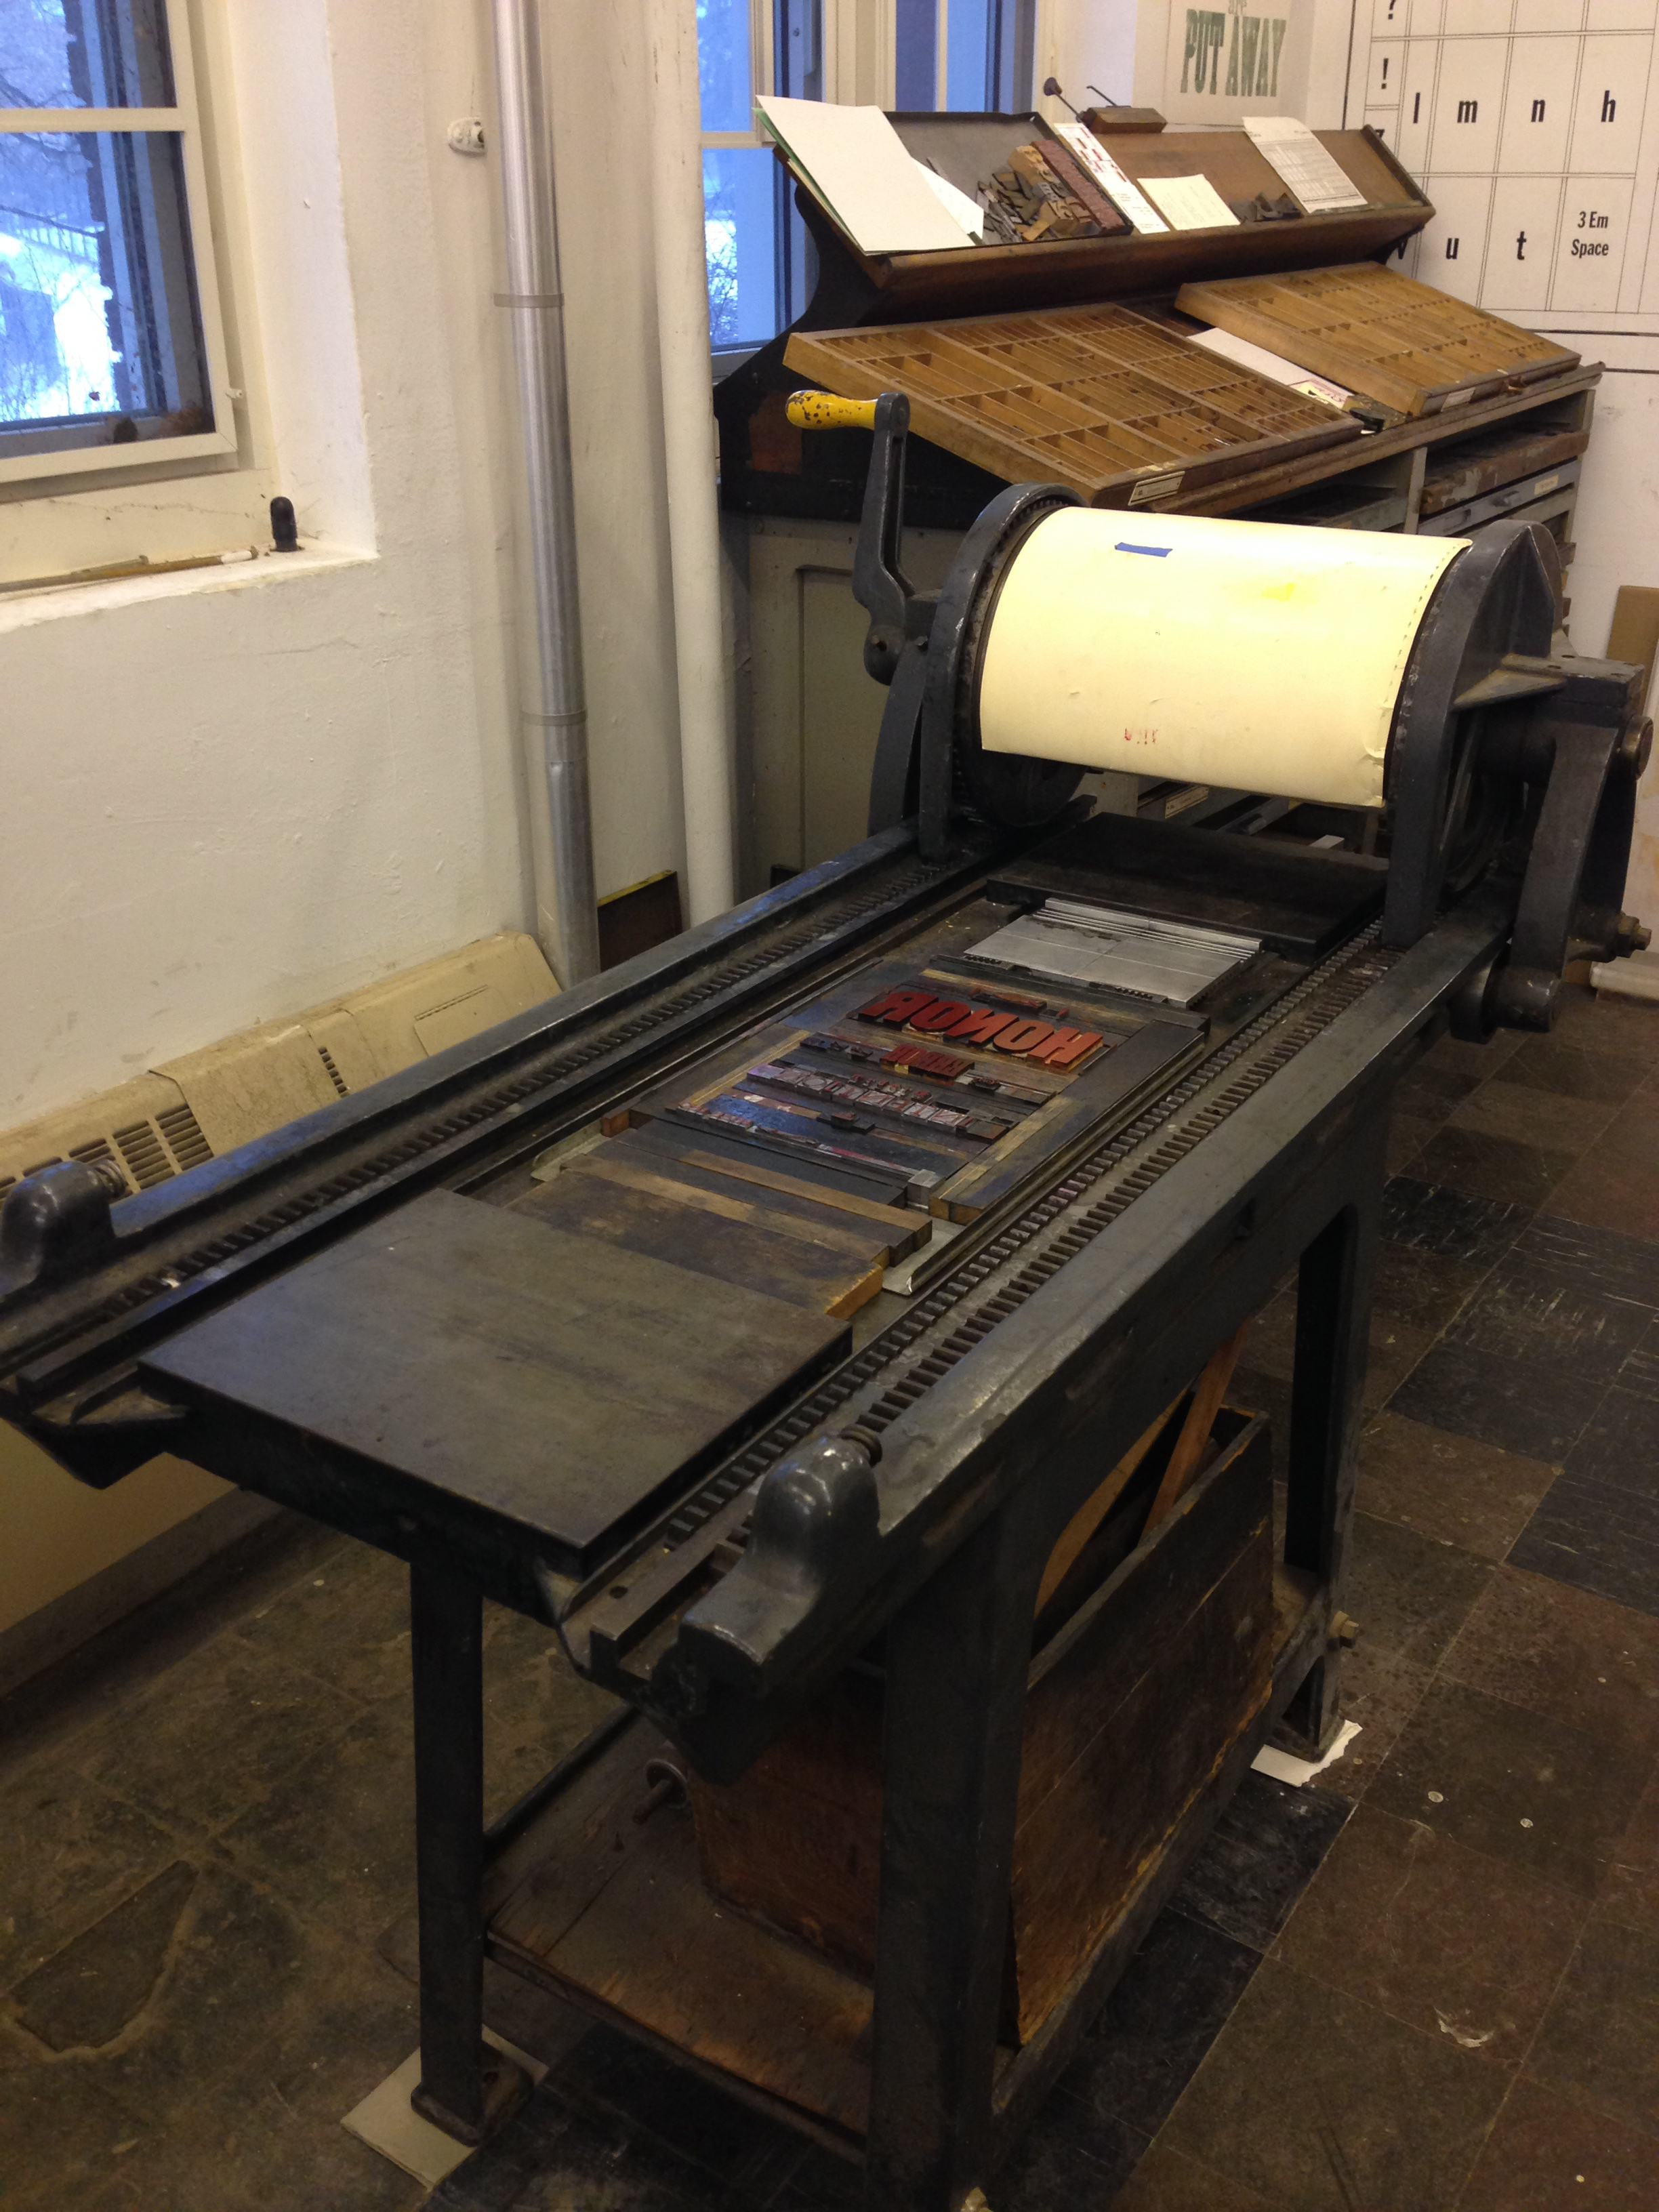 The proofing press I worked on.